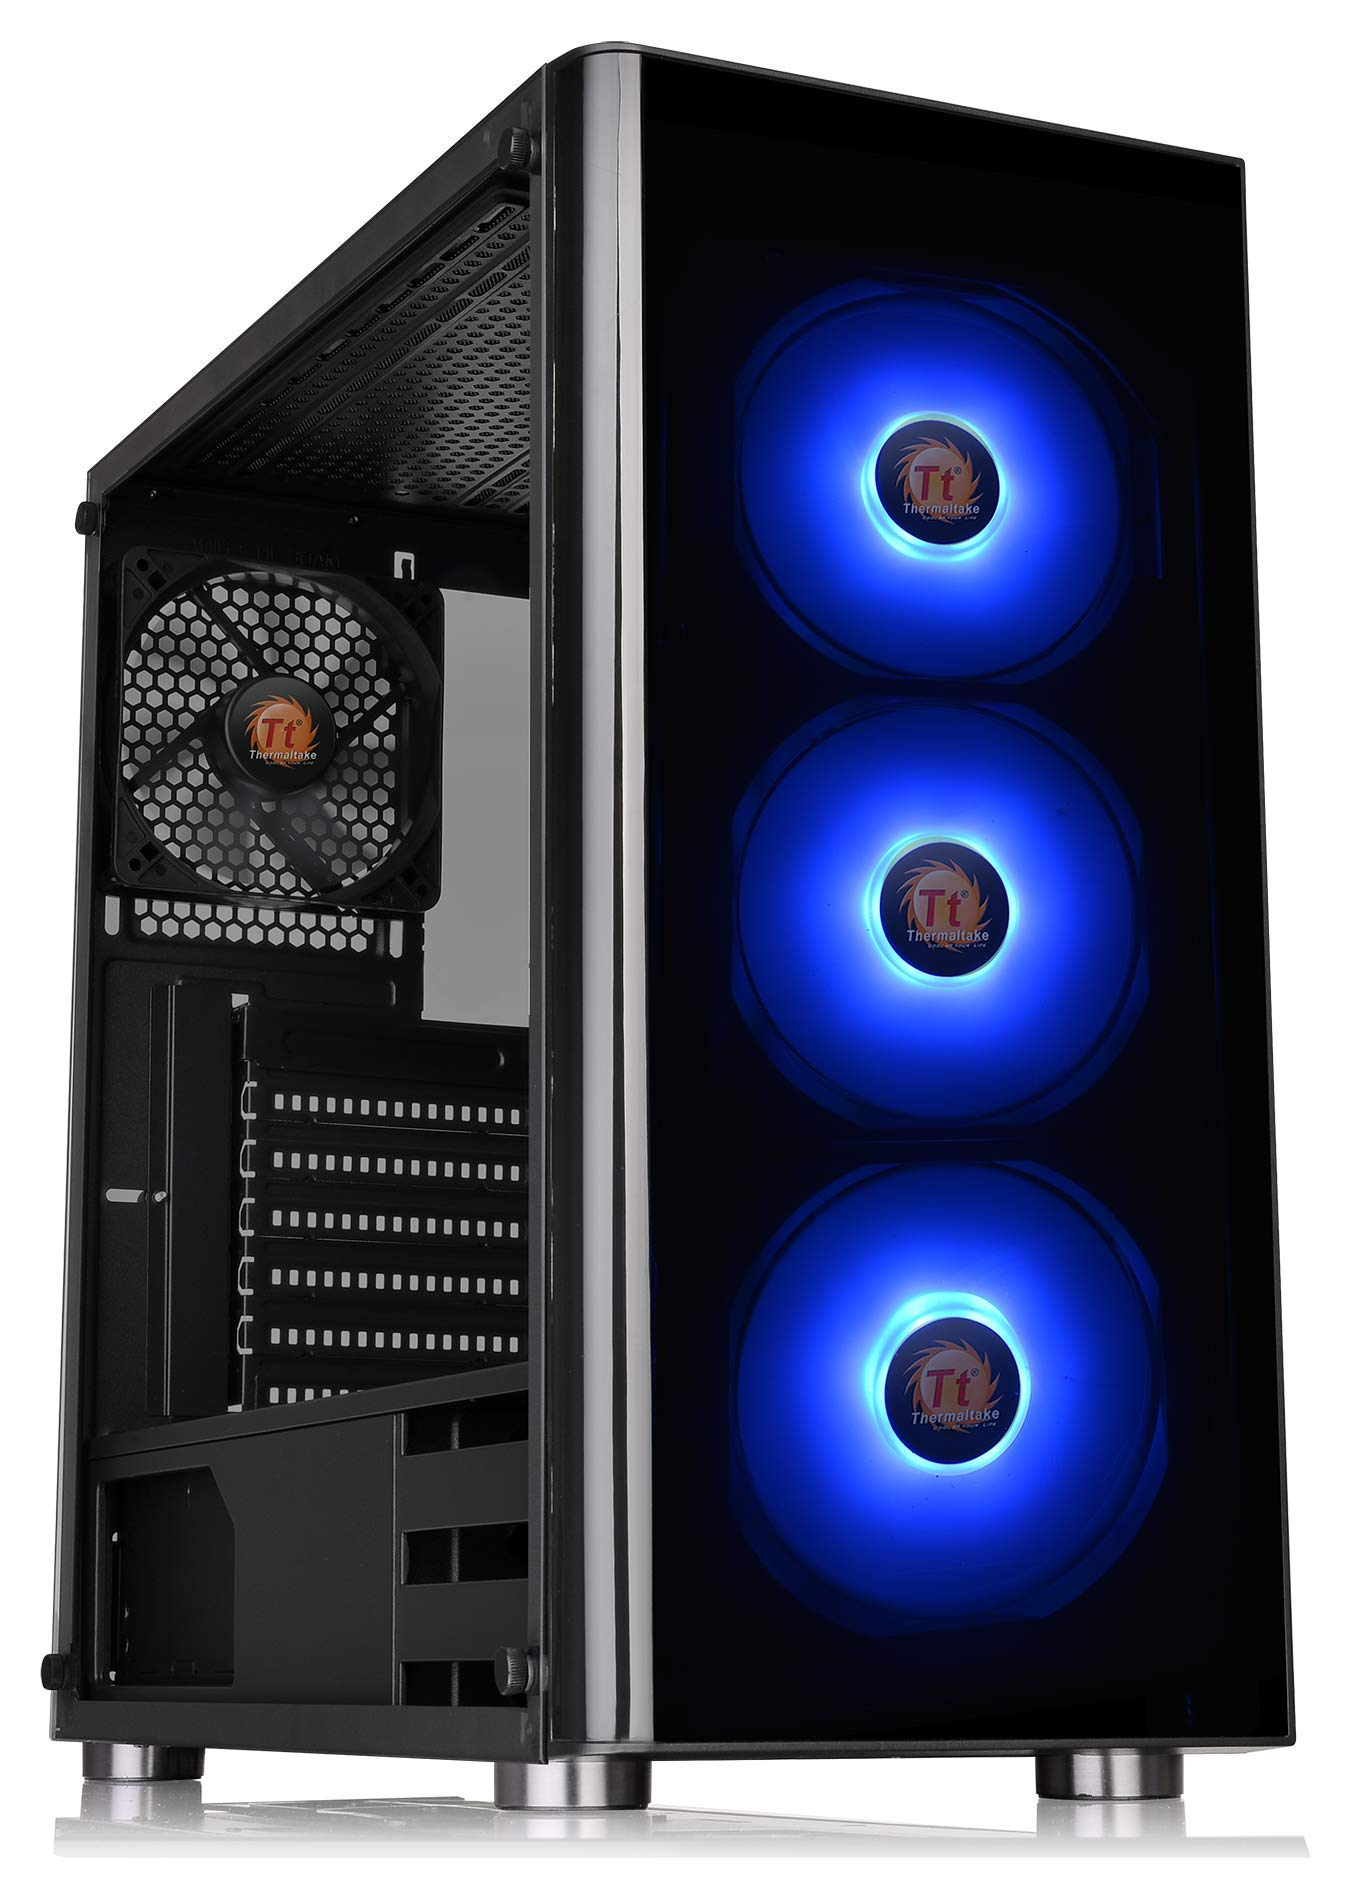 Thermaltake V200 Tempered Glass RGB Edition 12V MB Sync Capable ATX Mid-Tower Chassis with 3 120mm 12V RGB Fan + 1 Black 120mm Rear Fan Pre-Installed CA-1K8-00M1WN-01 by Thermaltake